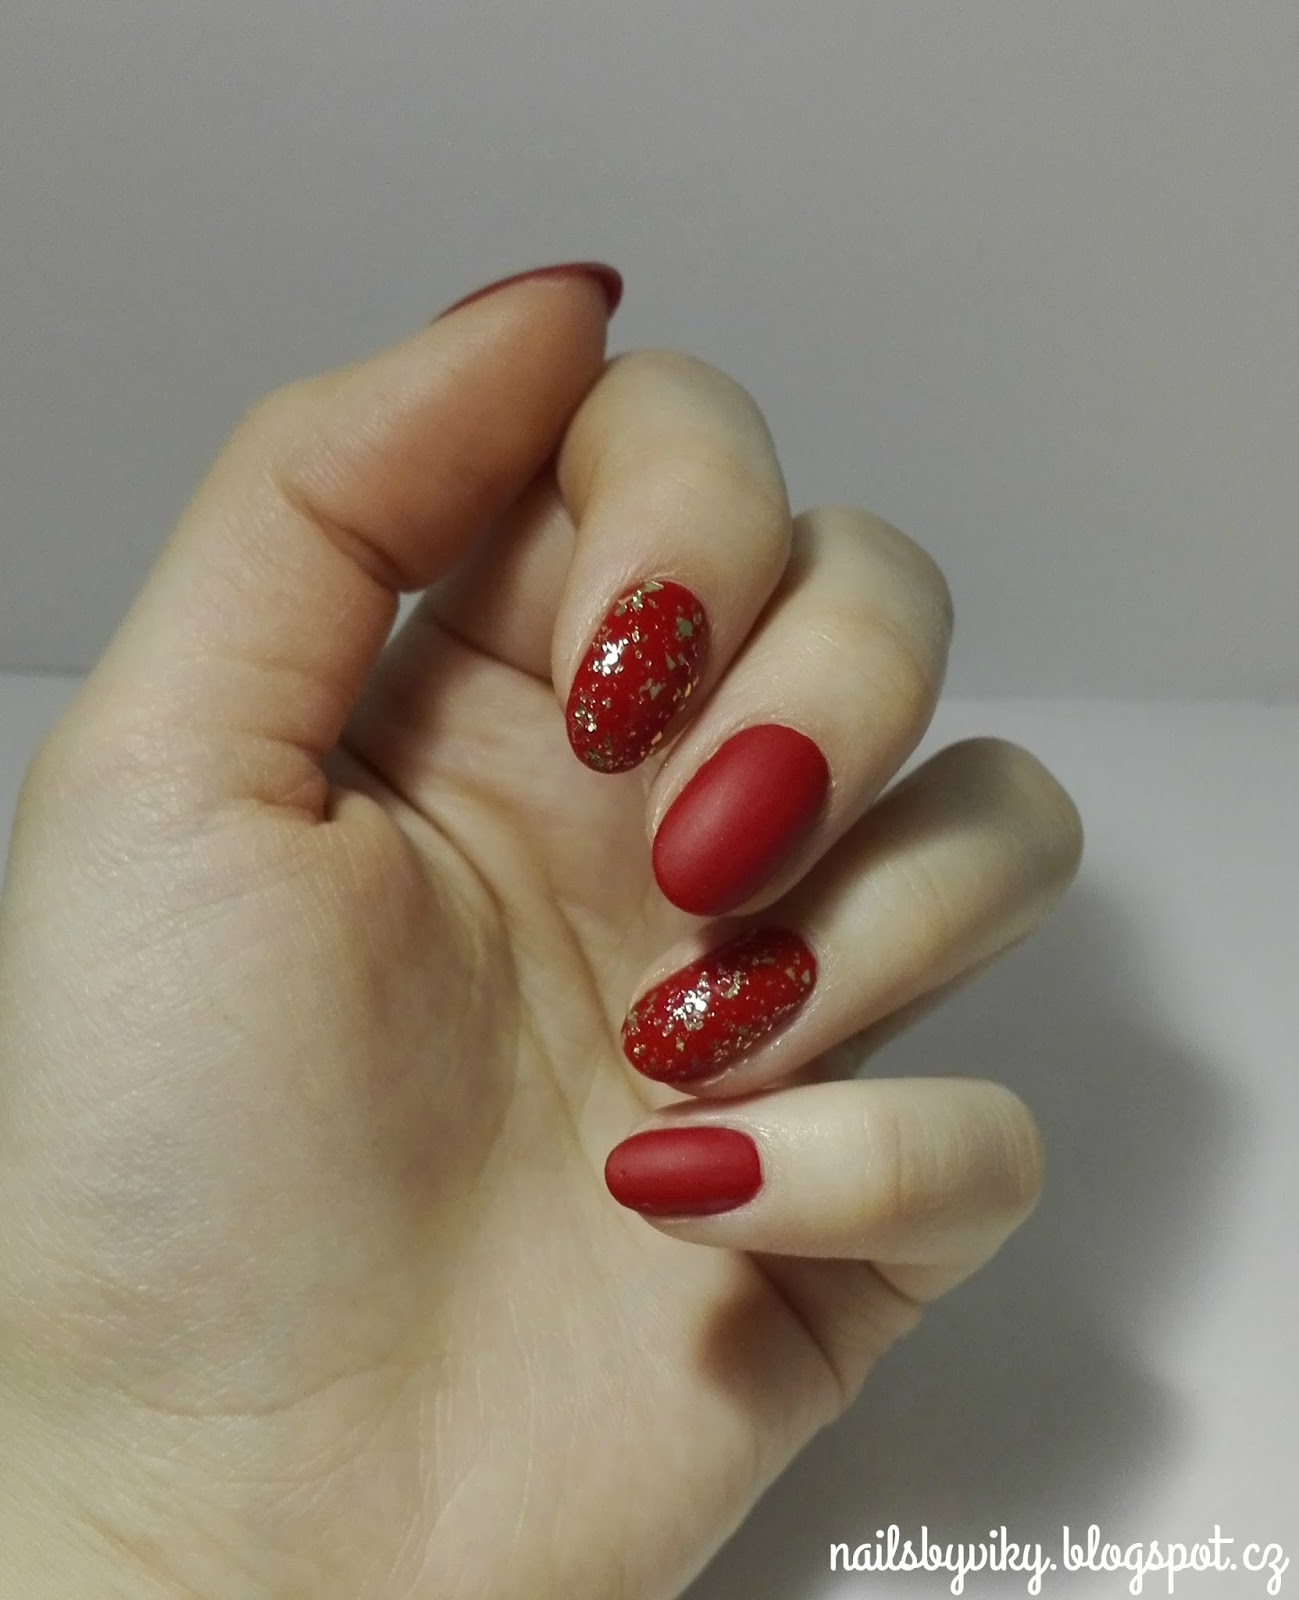 Nails by Viky